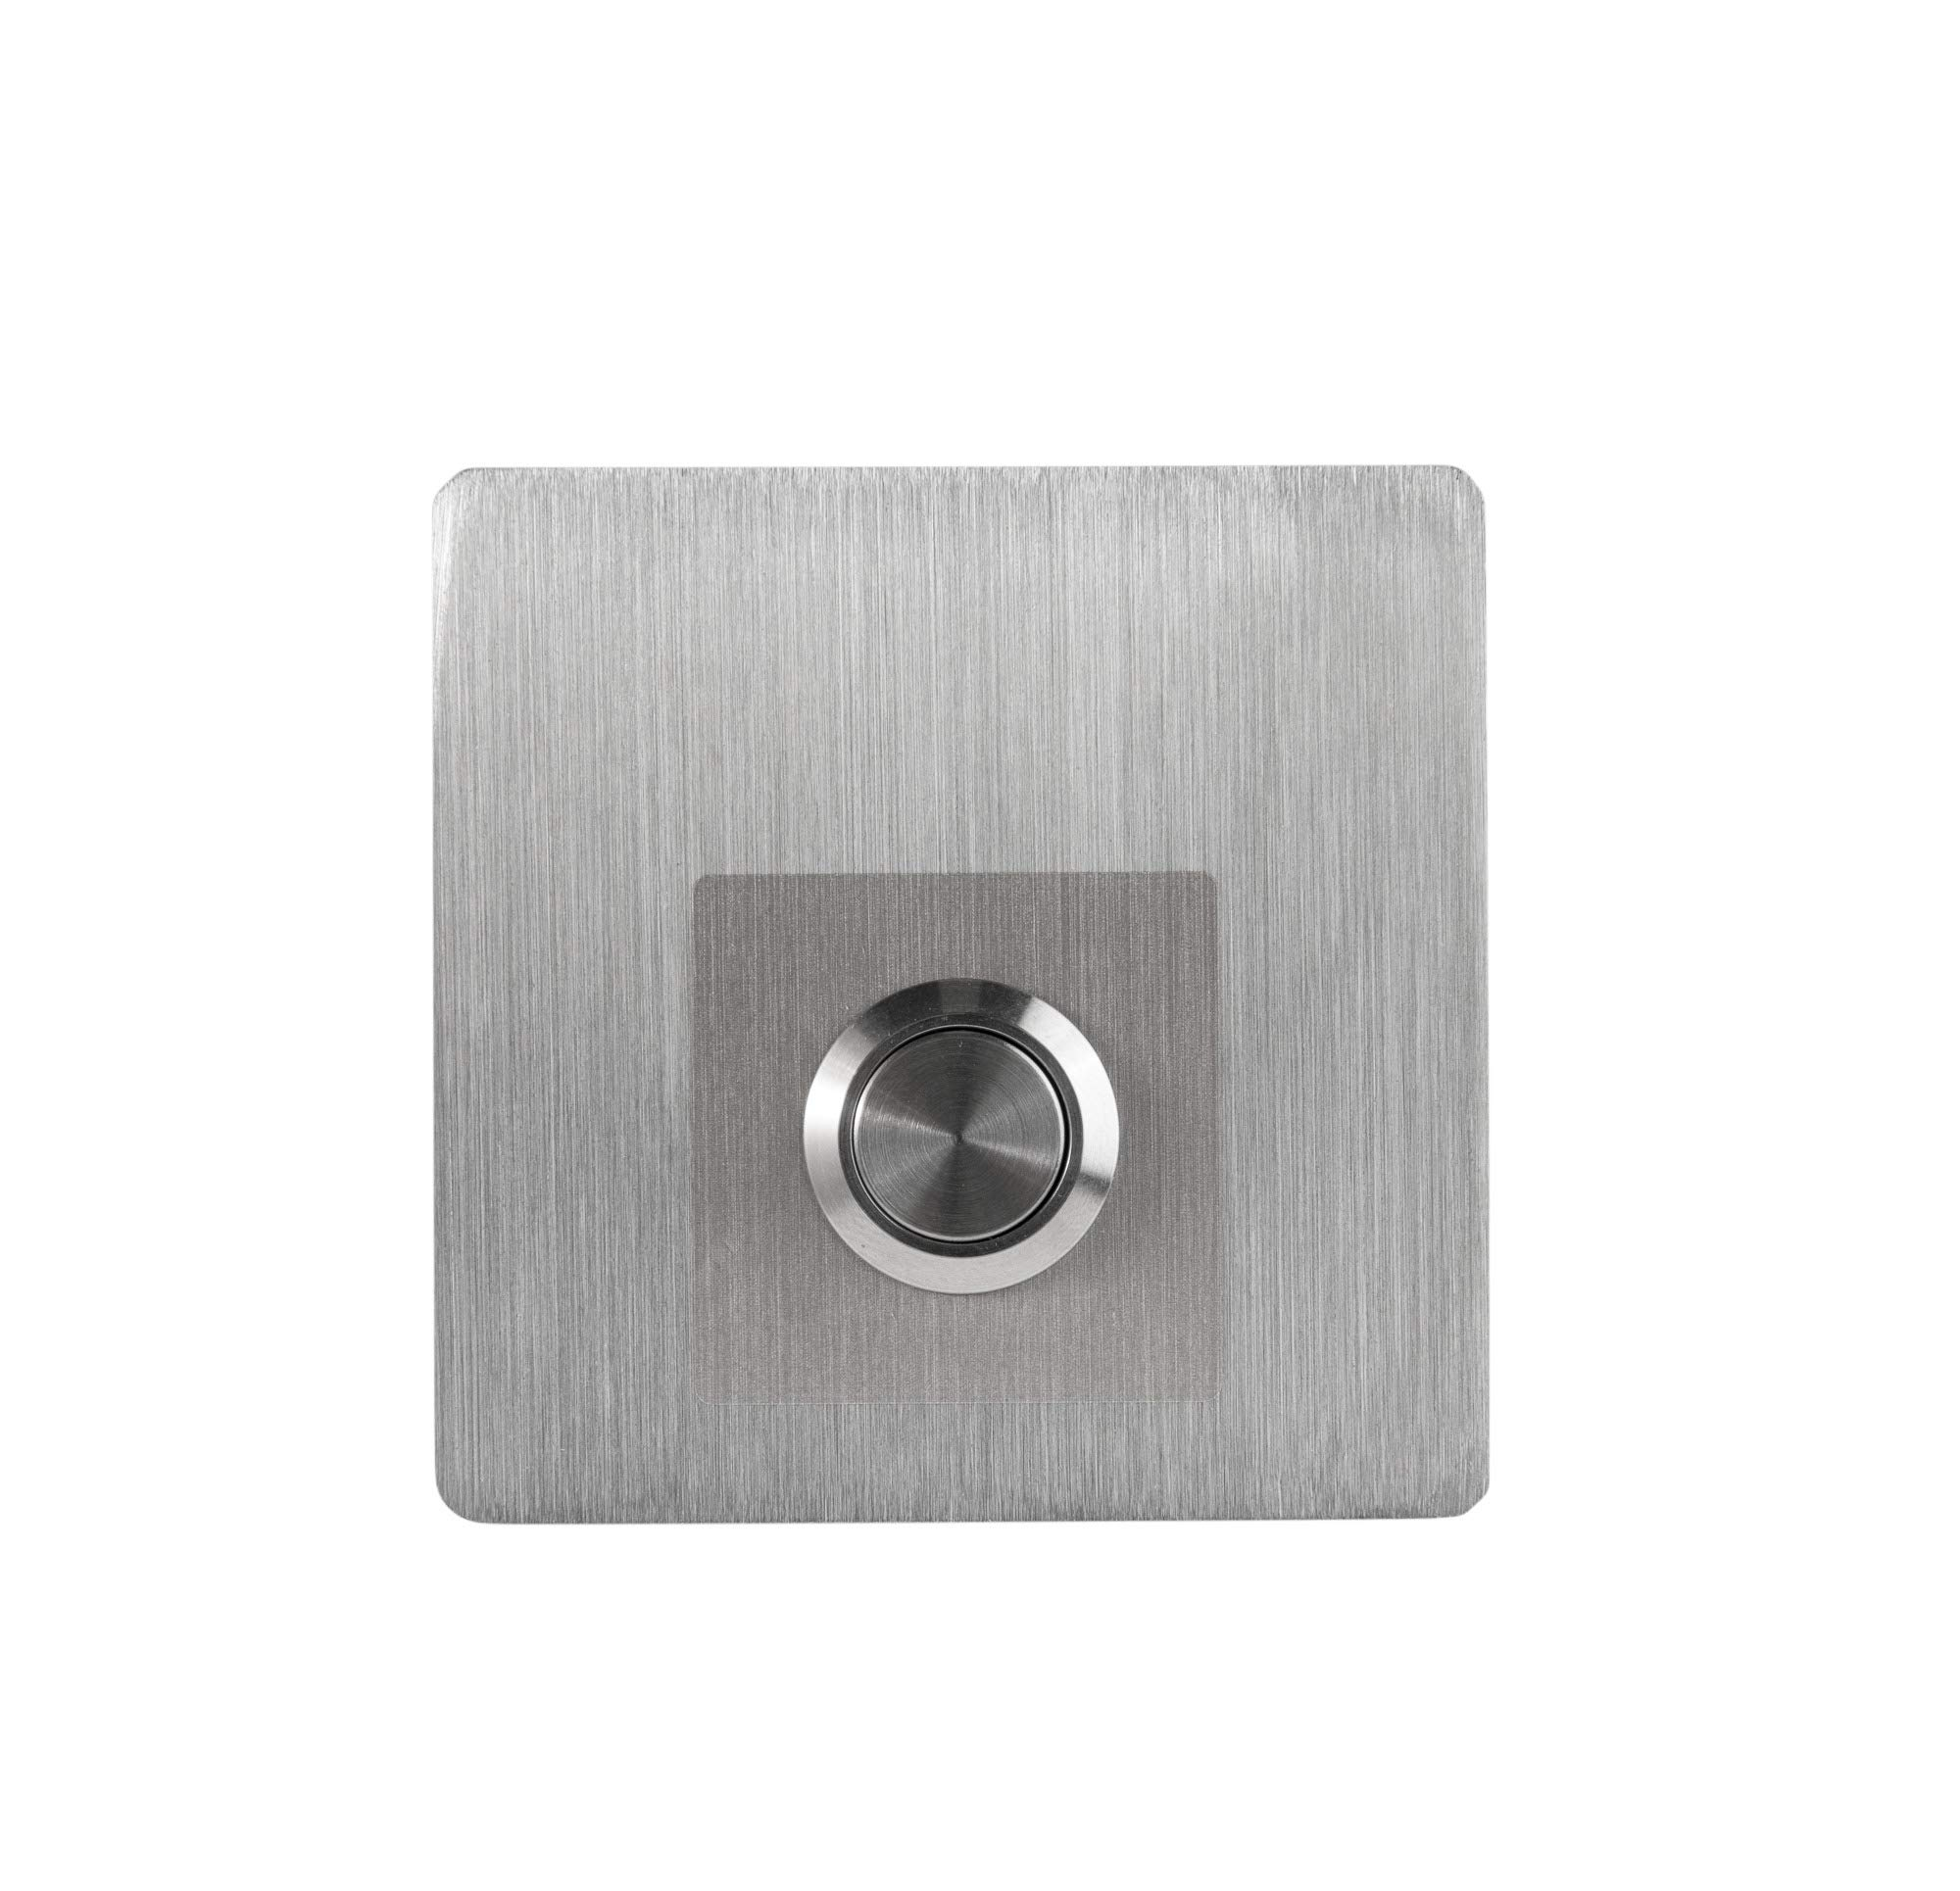 Modern Stainless Hardware Model S4 Stainless Steel Doorbell Button in grade 304 Stainless Steel 4mm thick